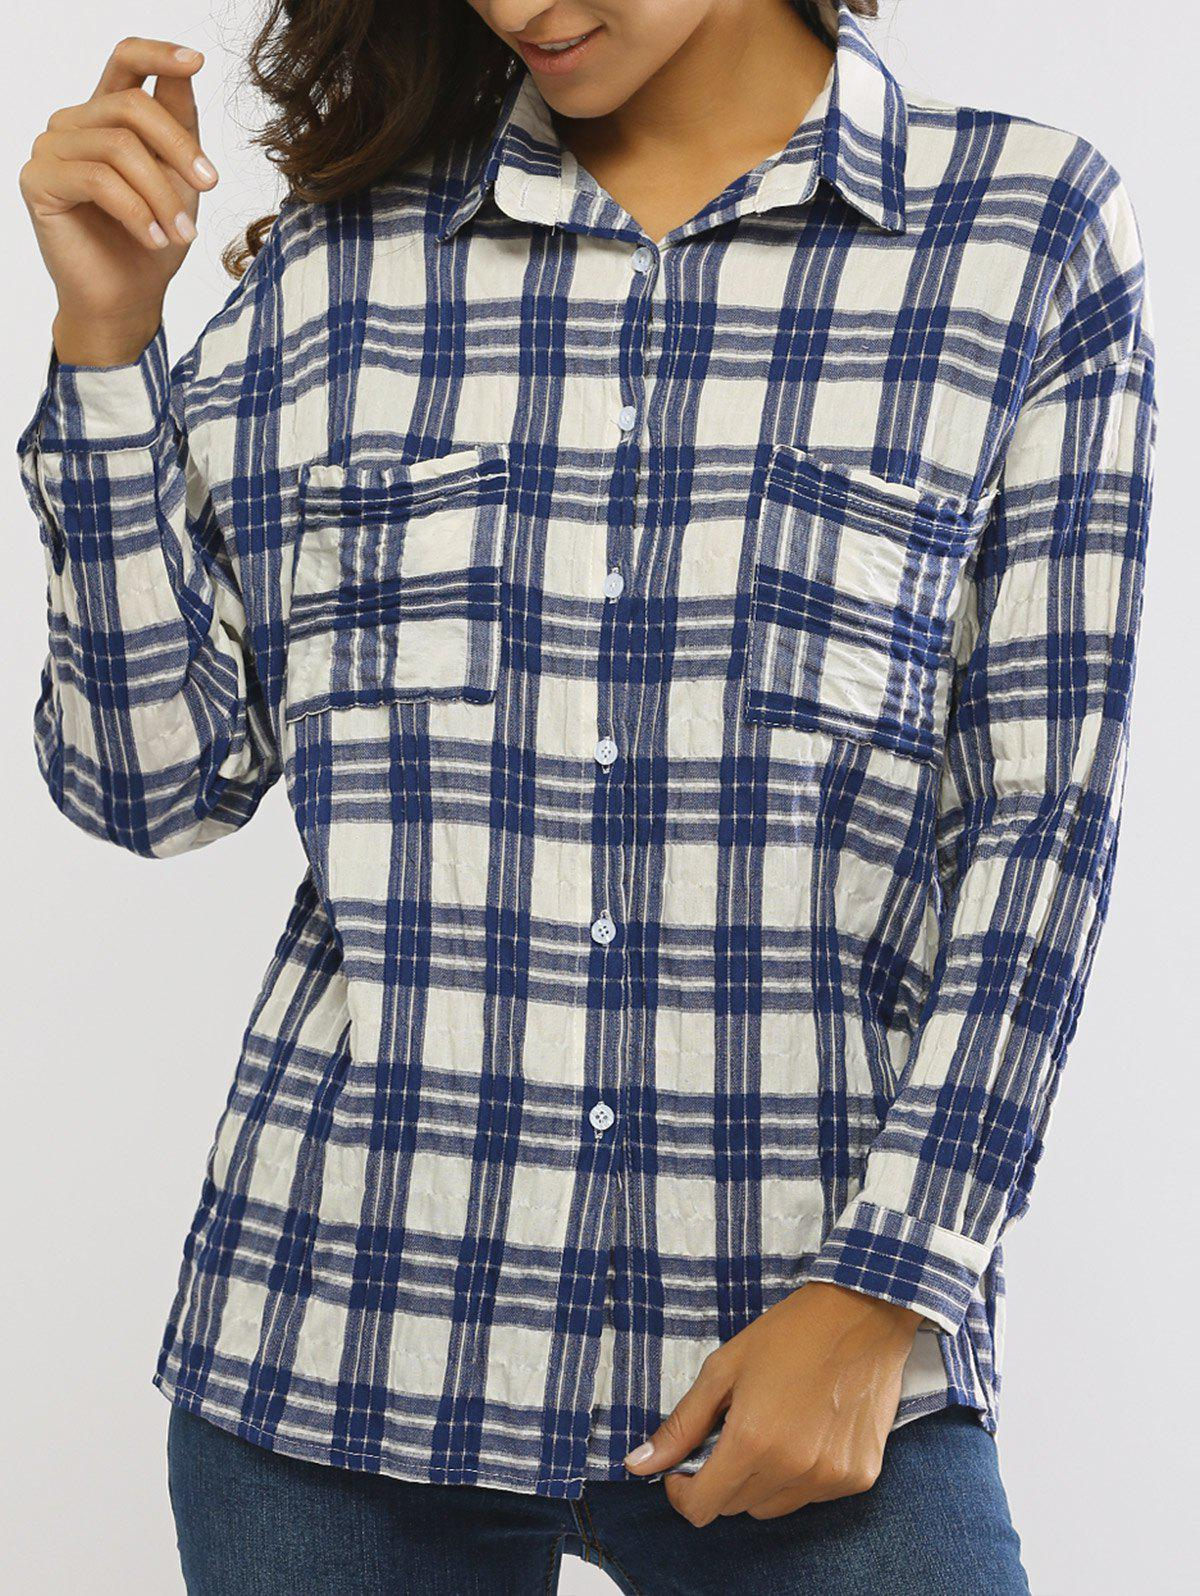 Boyfrined Plaid Long Sleeve Shirt